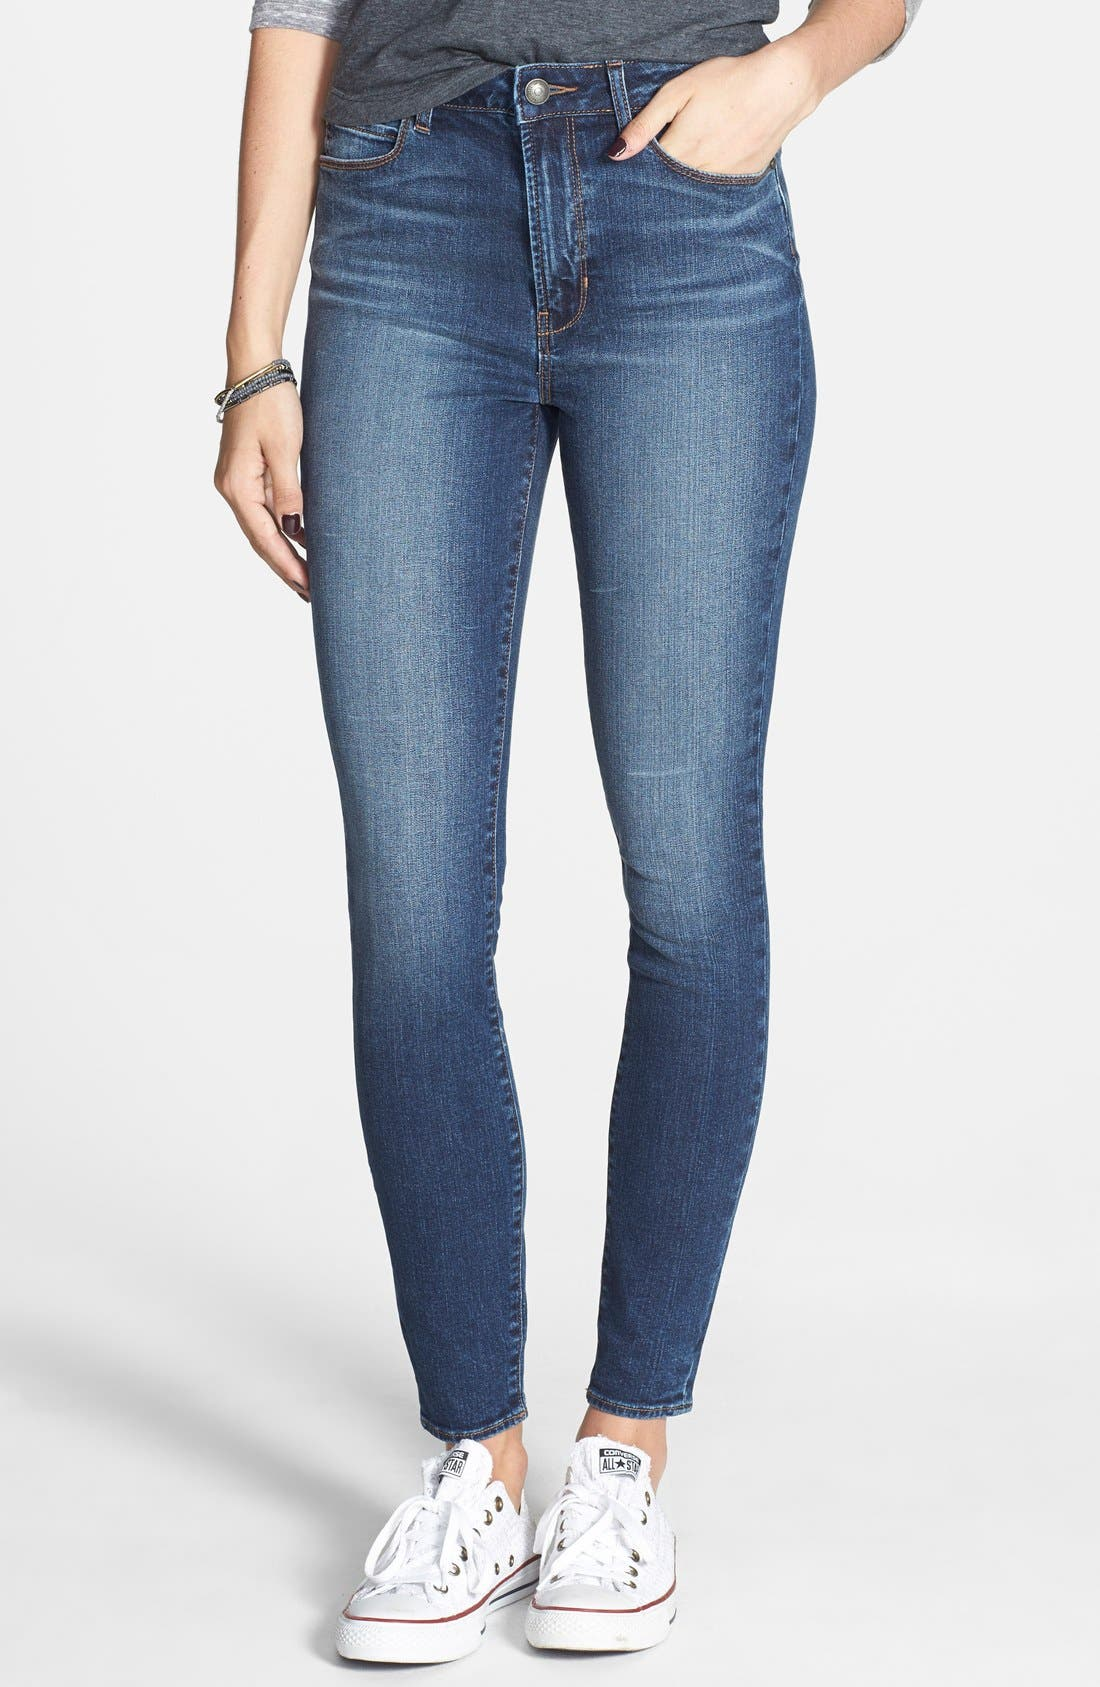 Main Image - Articles of Society 'Halley' High Waist Skinny Jeans (Twilight Wash)